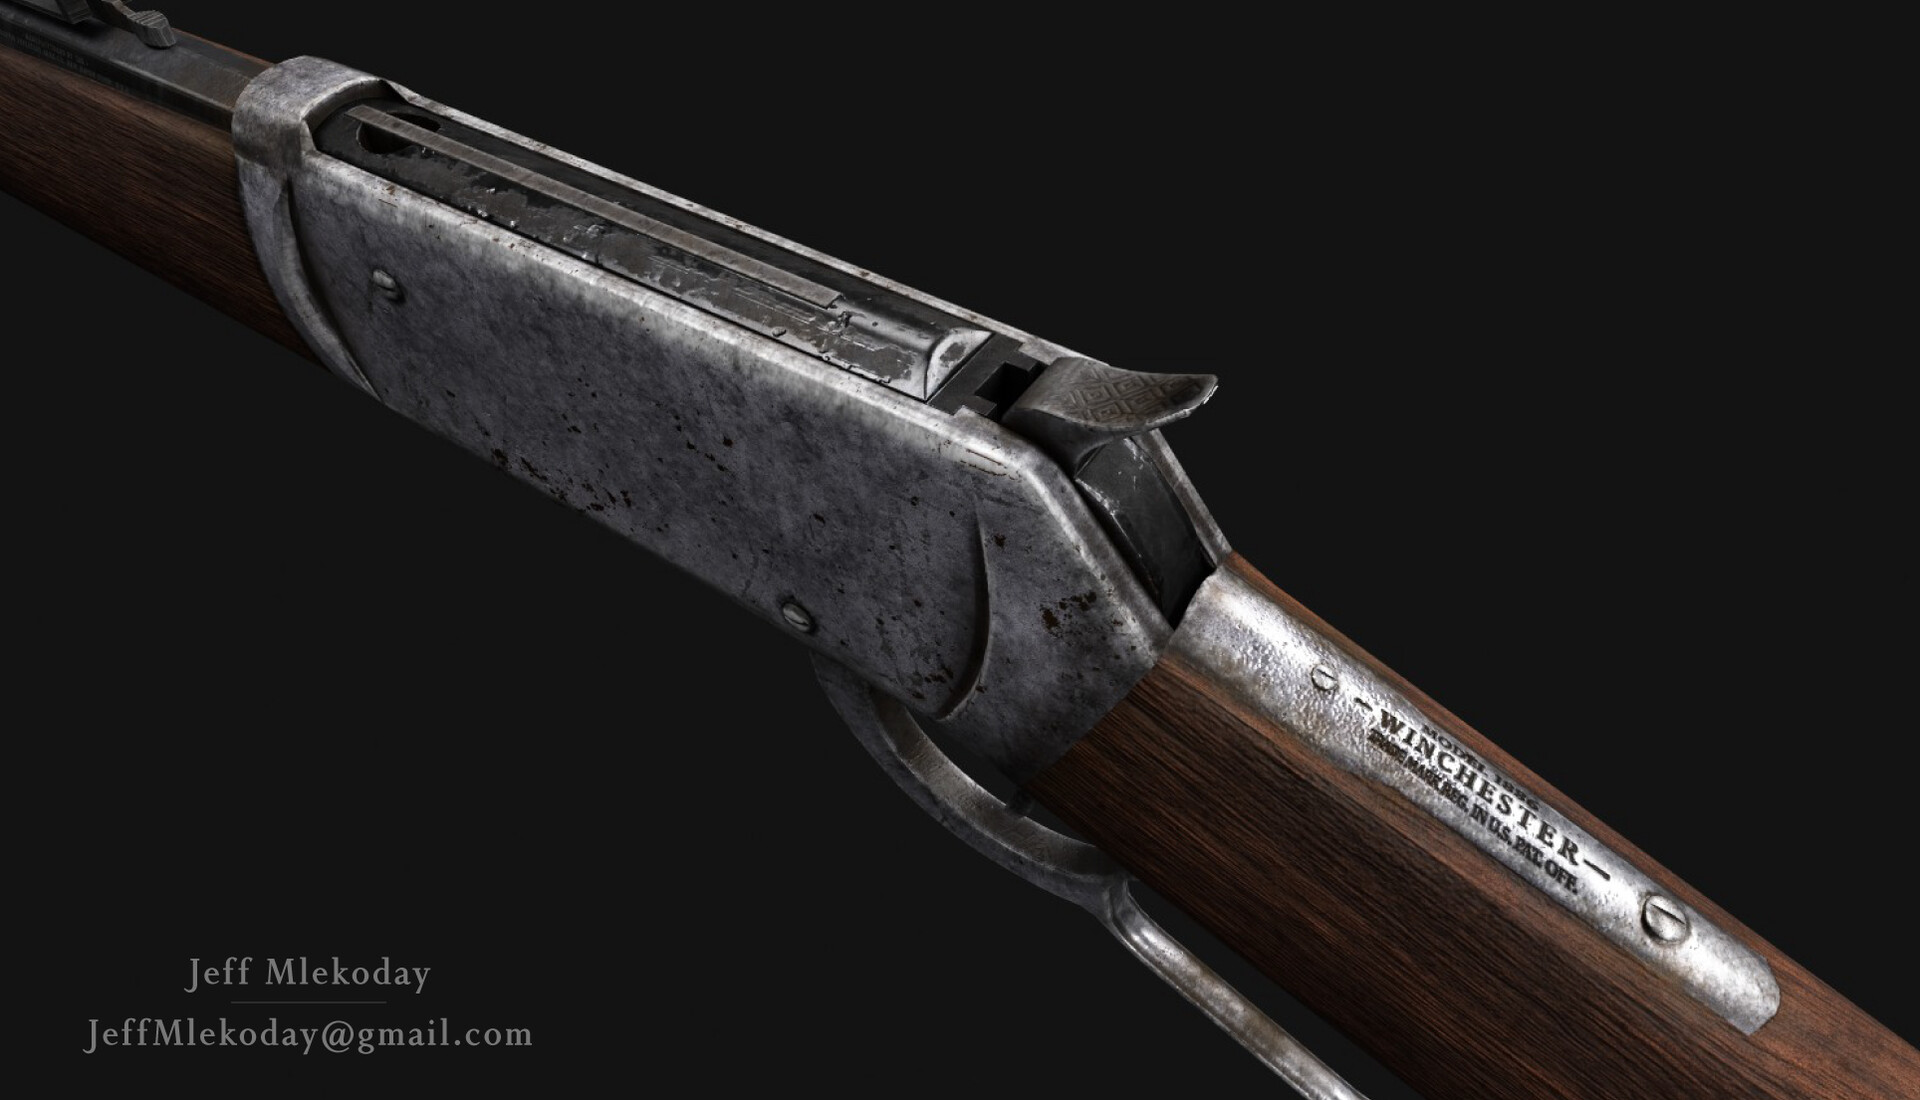 Jeff Mlekoday - Winchester 1886 Rifle